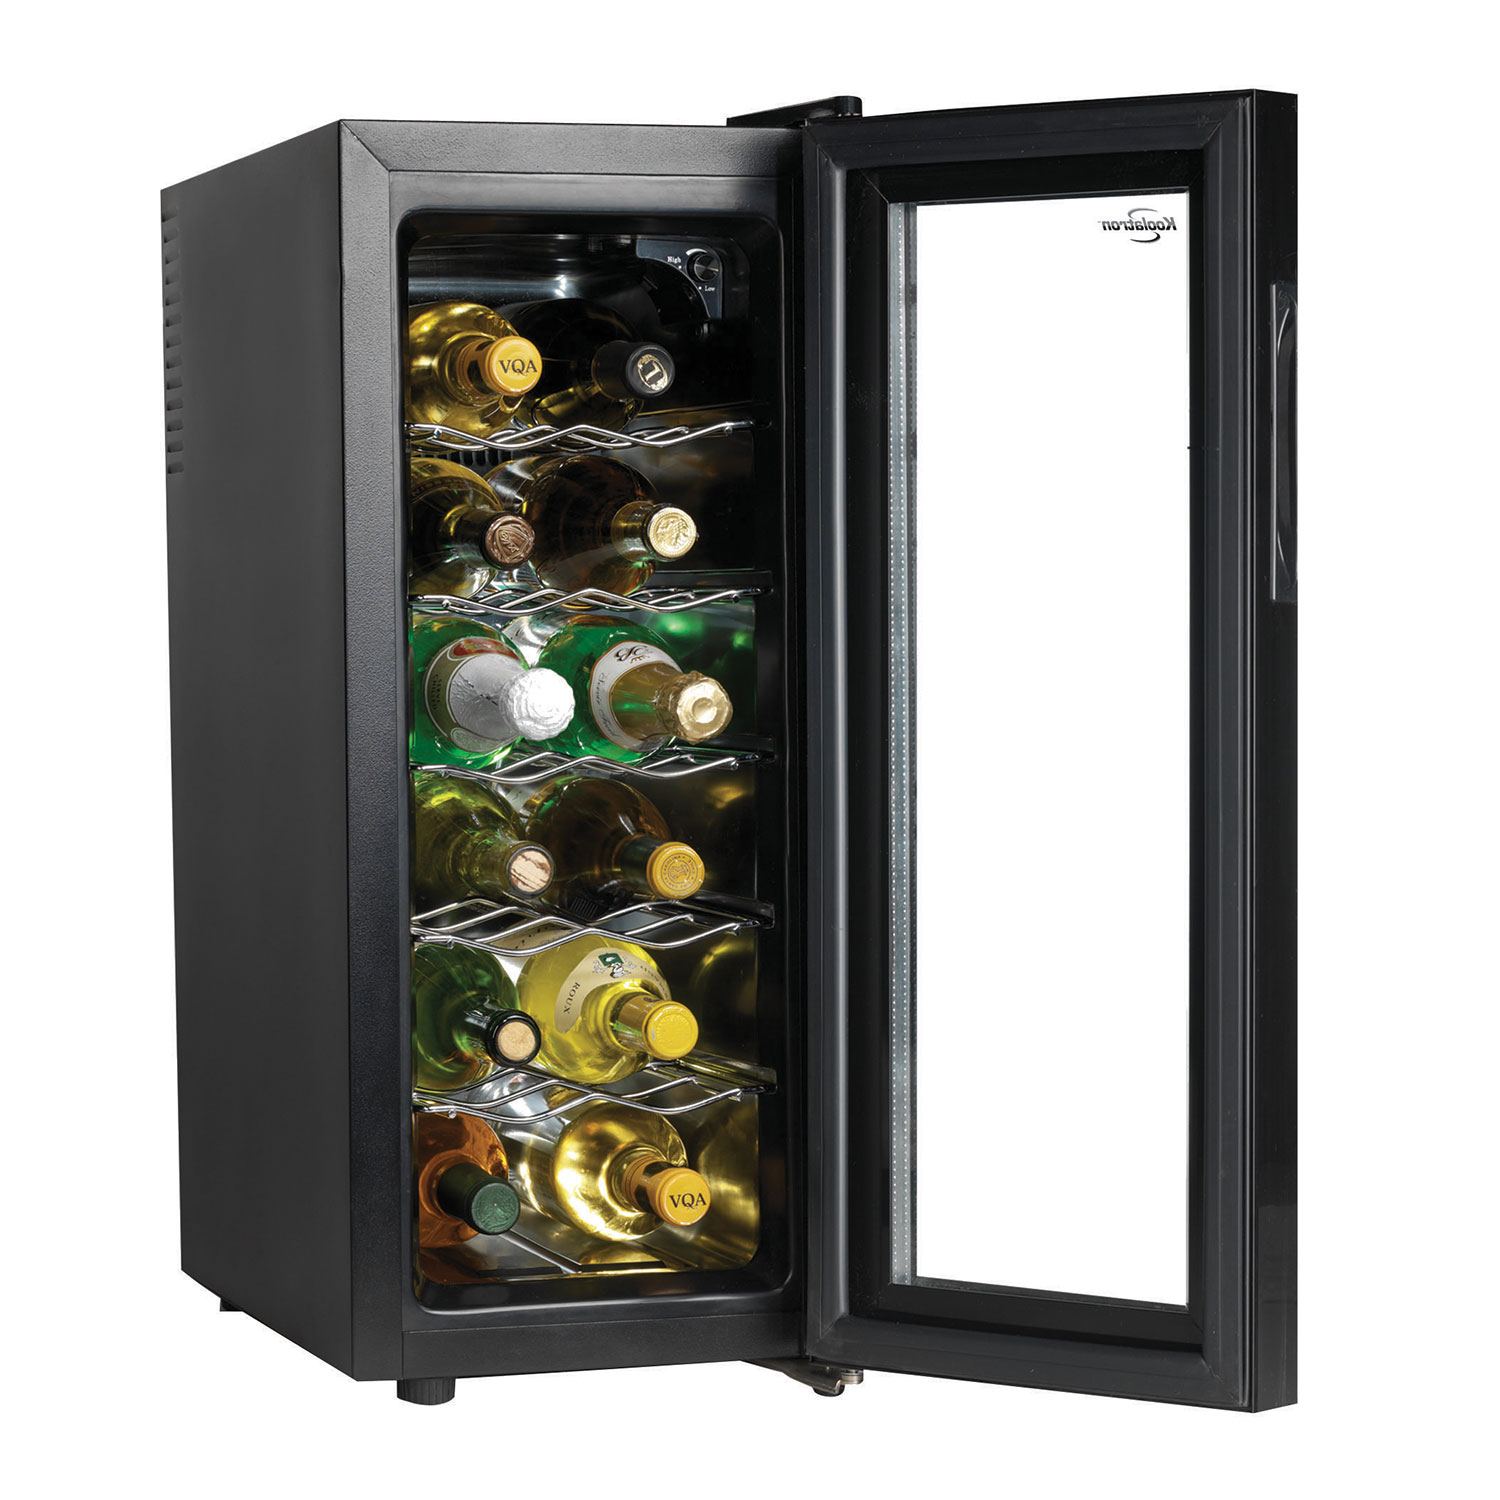 Superb 12 Bottle Wine Fridge Part - 12: Koolatron 12-Bottle Freestanding Wine Cellar (WC12) : Wine Coolers - Best  Buy Canada